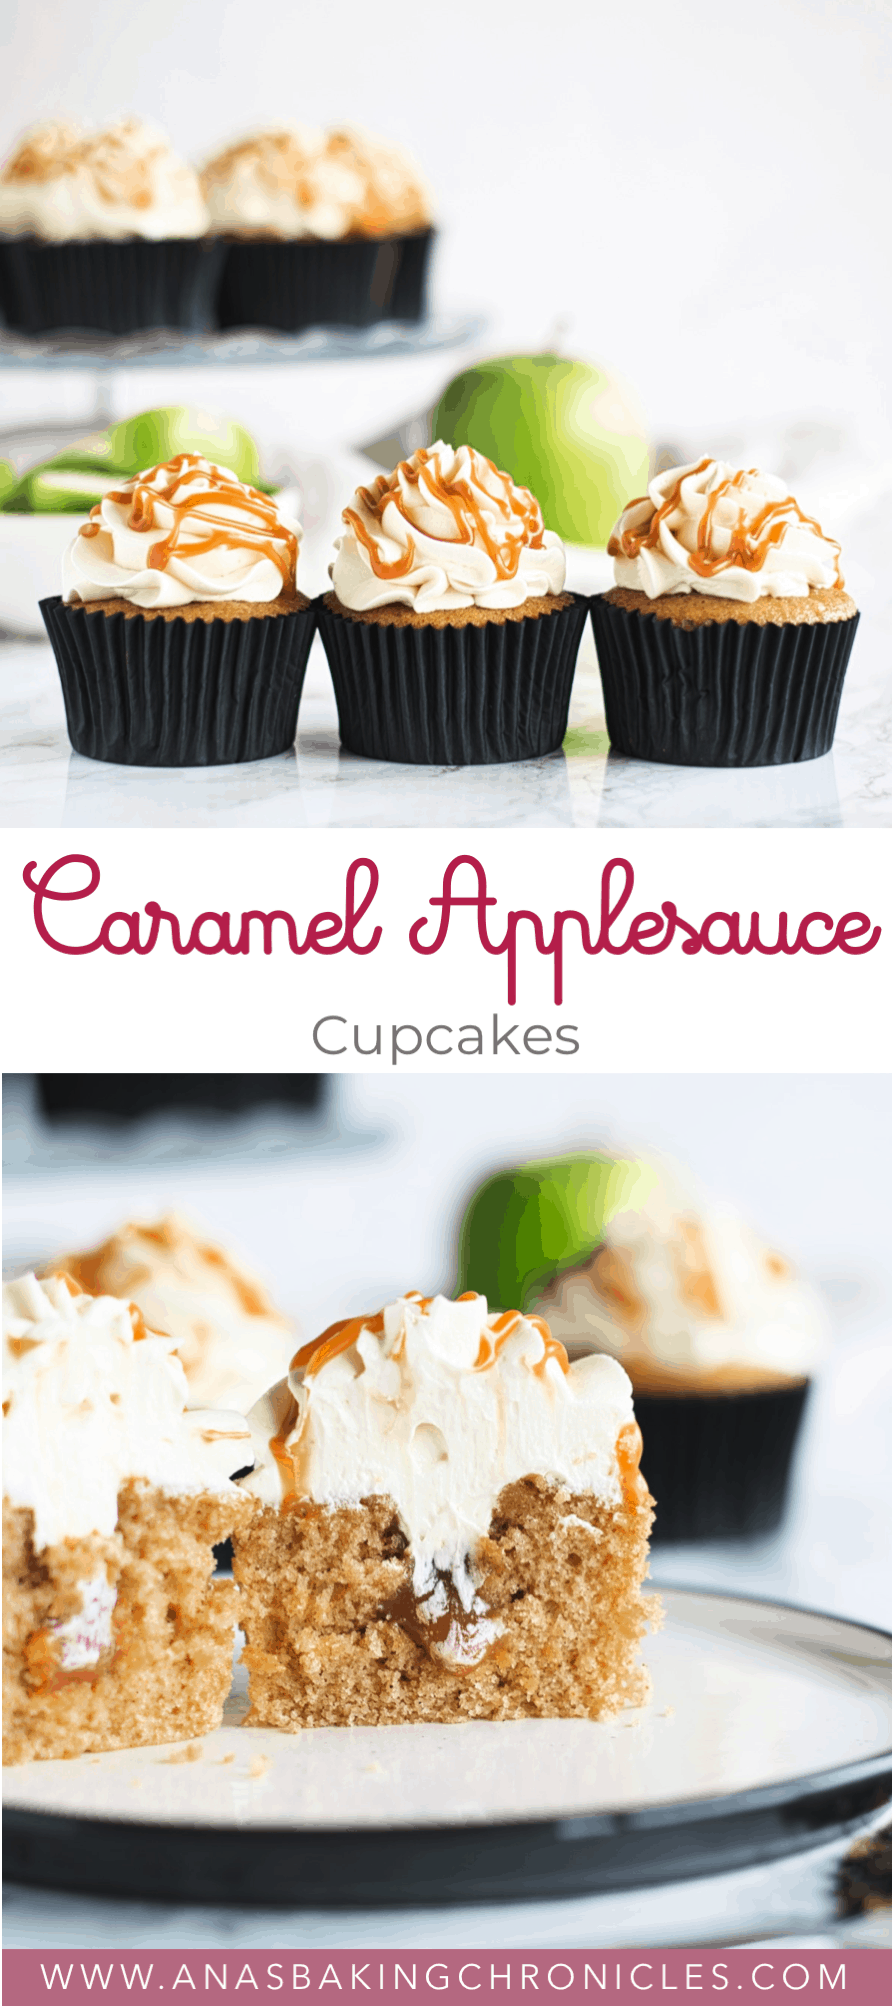 I'm welcoming autumn with these Caramel Applesauce Cupcakes. Fluffy and moist applesauce spice cupcakes, filled with delicious salted caramel and topped with light vanilla buttercream. Is there really a better flavour combination? ⎪www.anasbakingchronicles.com